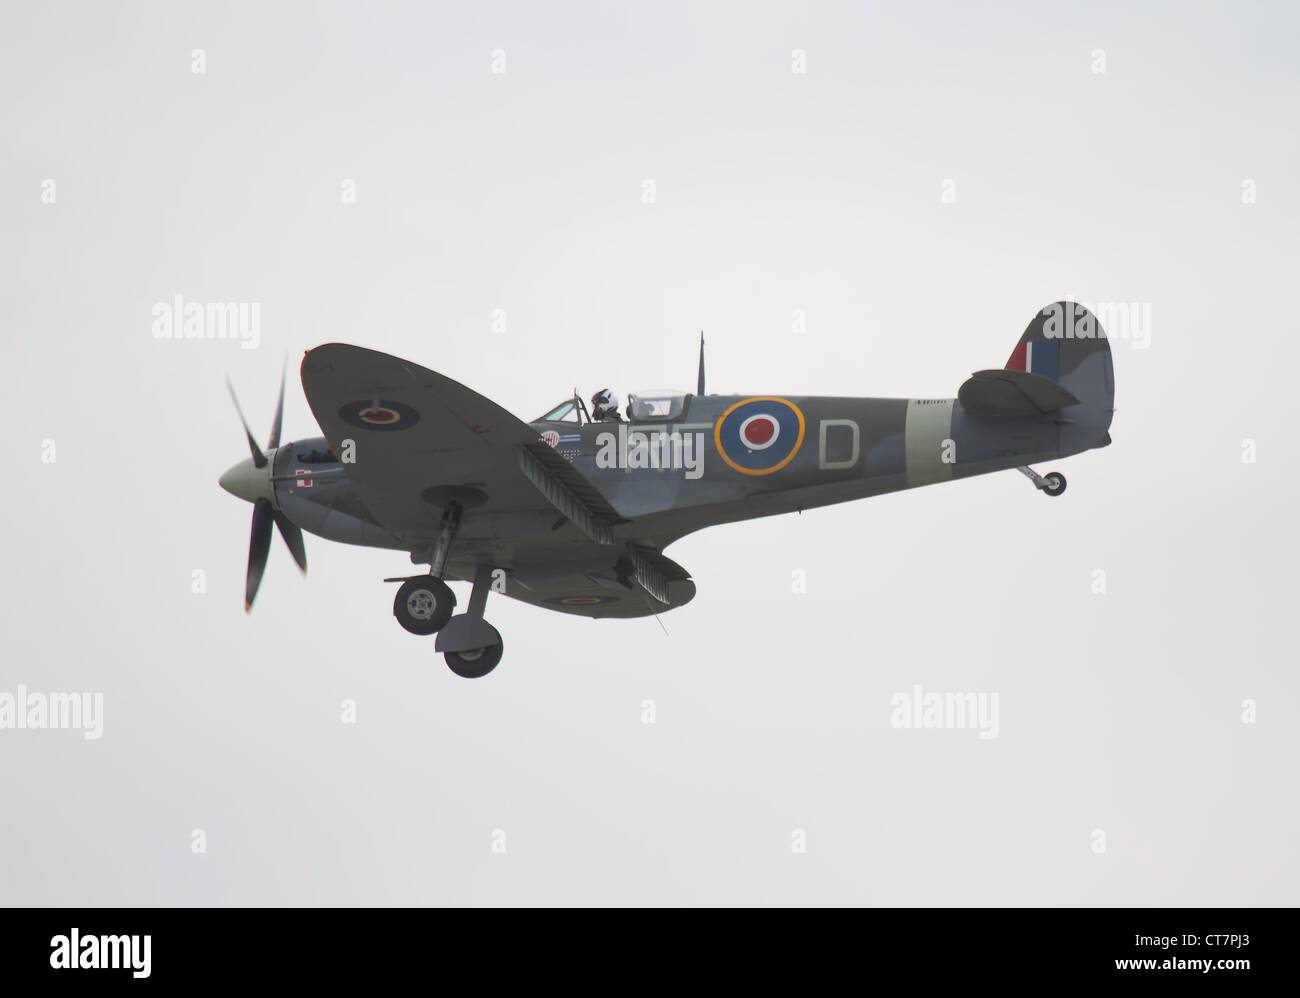 Supermarine Spitfire British single-seat fighter aircraft used by the RAF and many other allied counties in WW2 - Stock Image